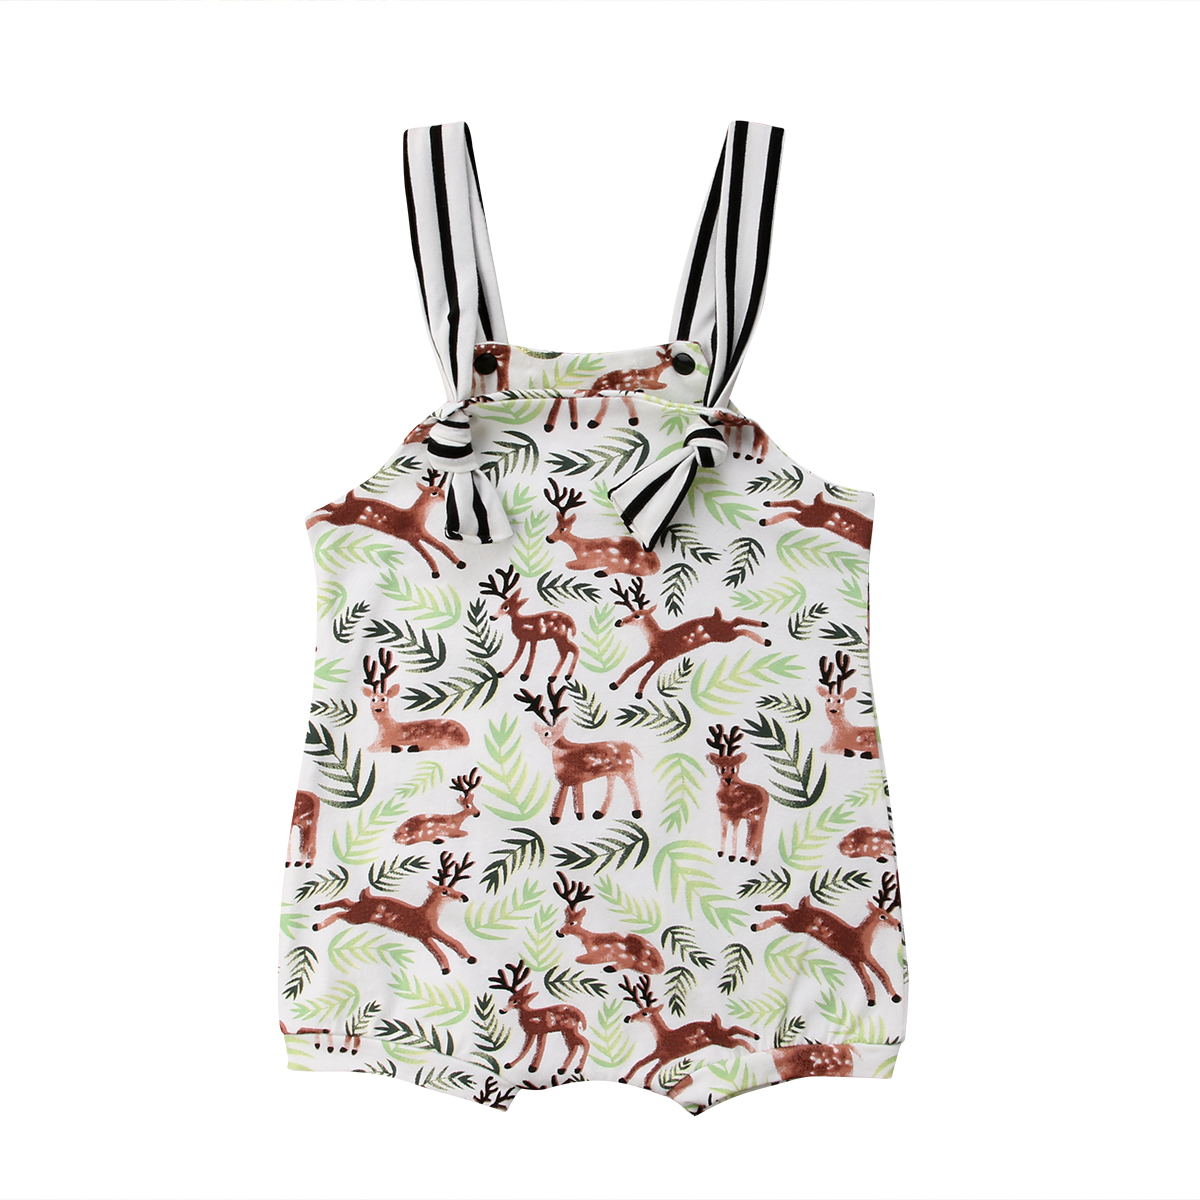 2018 Casual  Newborn Baby Boy Girls Sleeveless Deer Romper Jumpsuit Clothes Size 0-24M